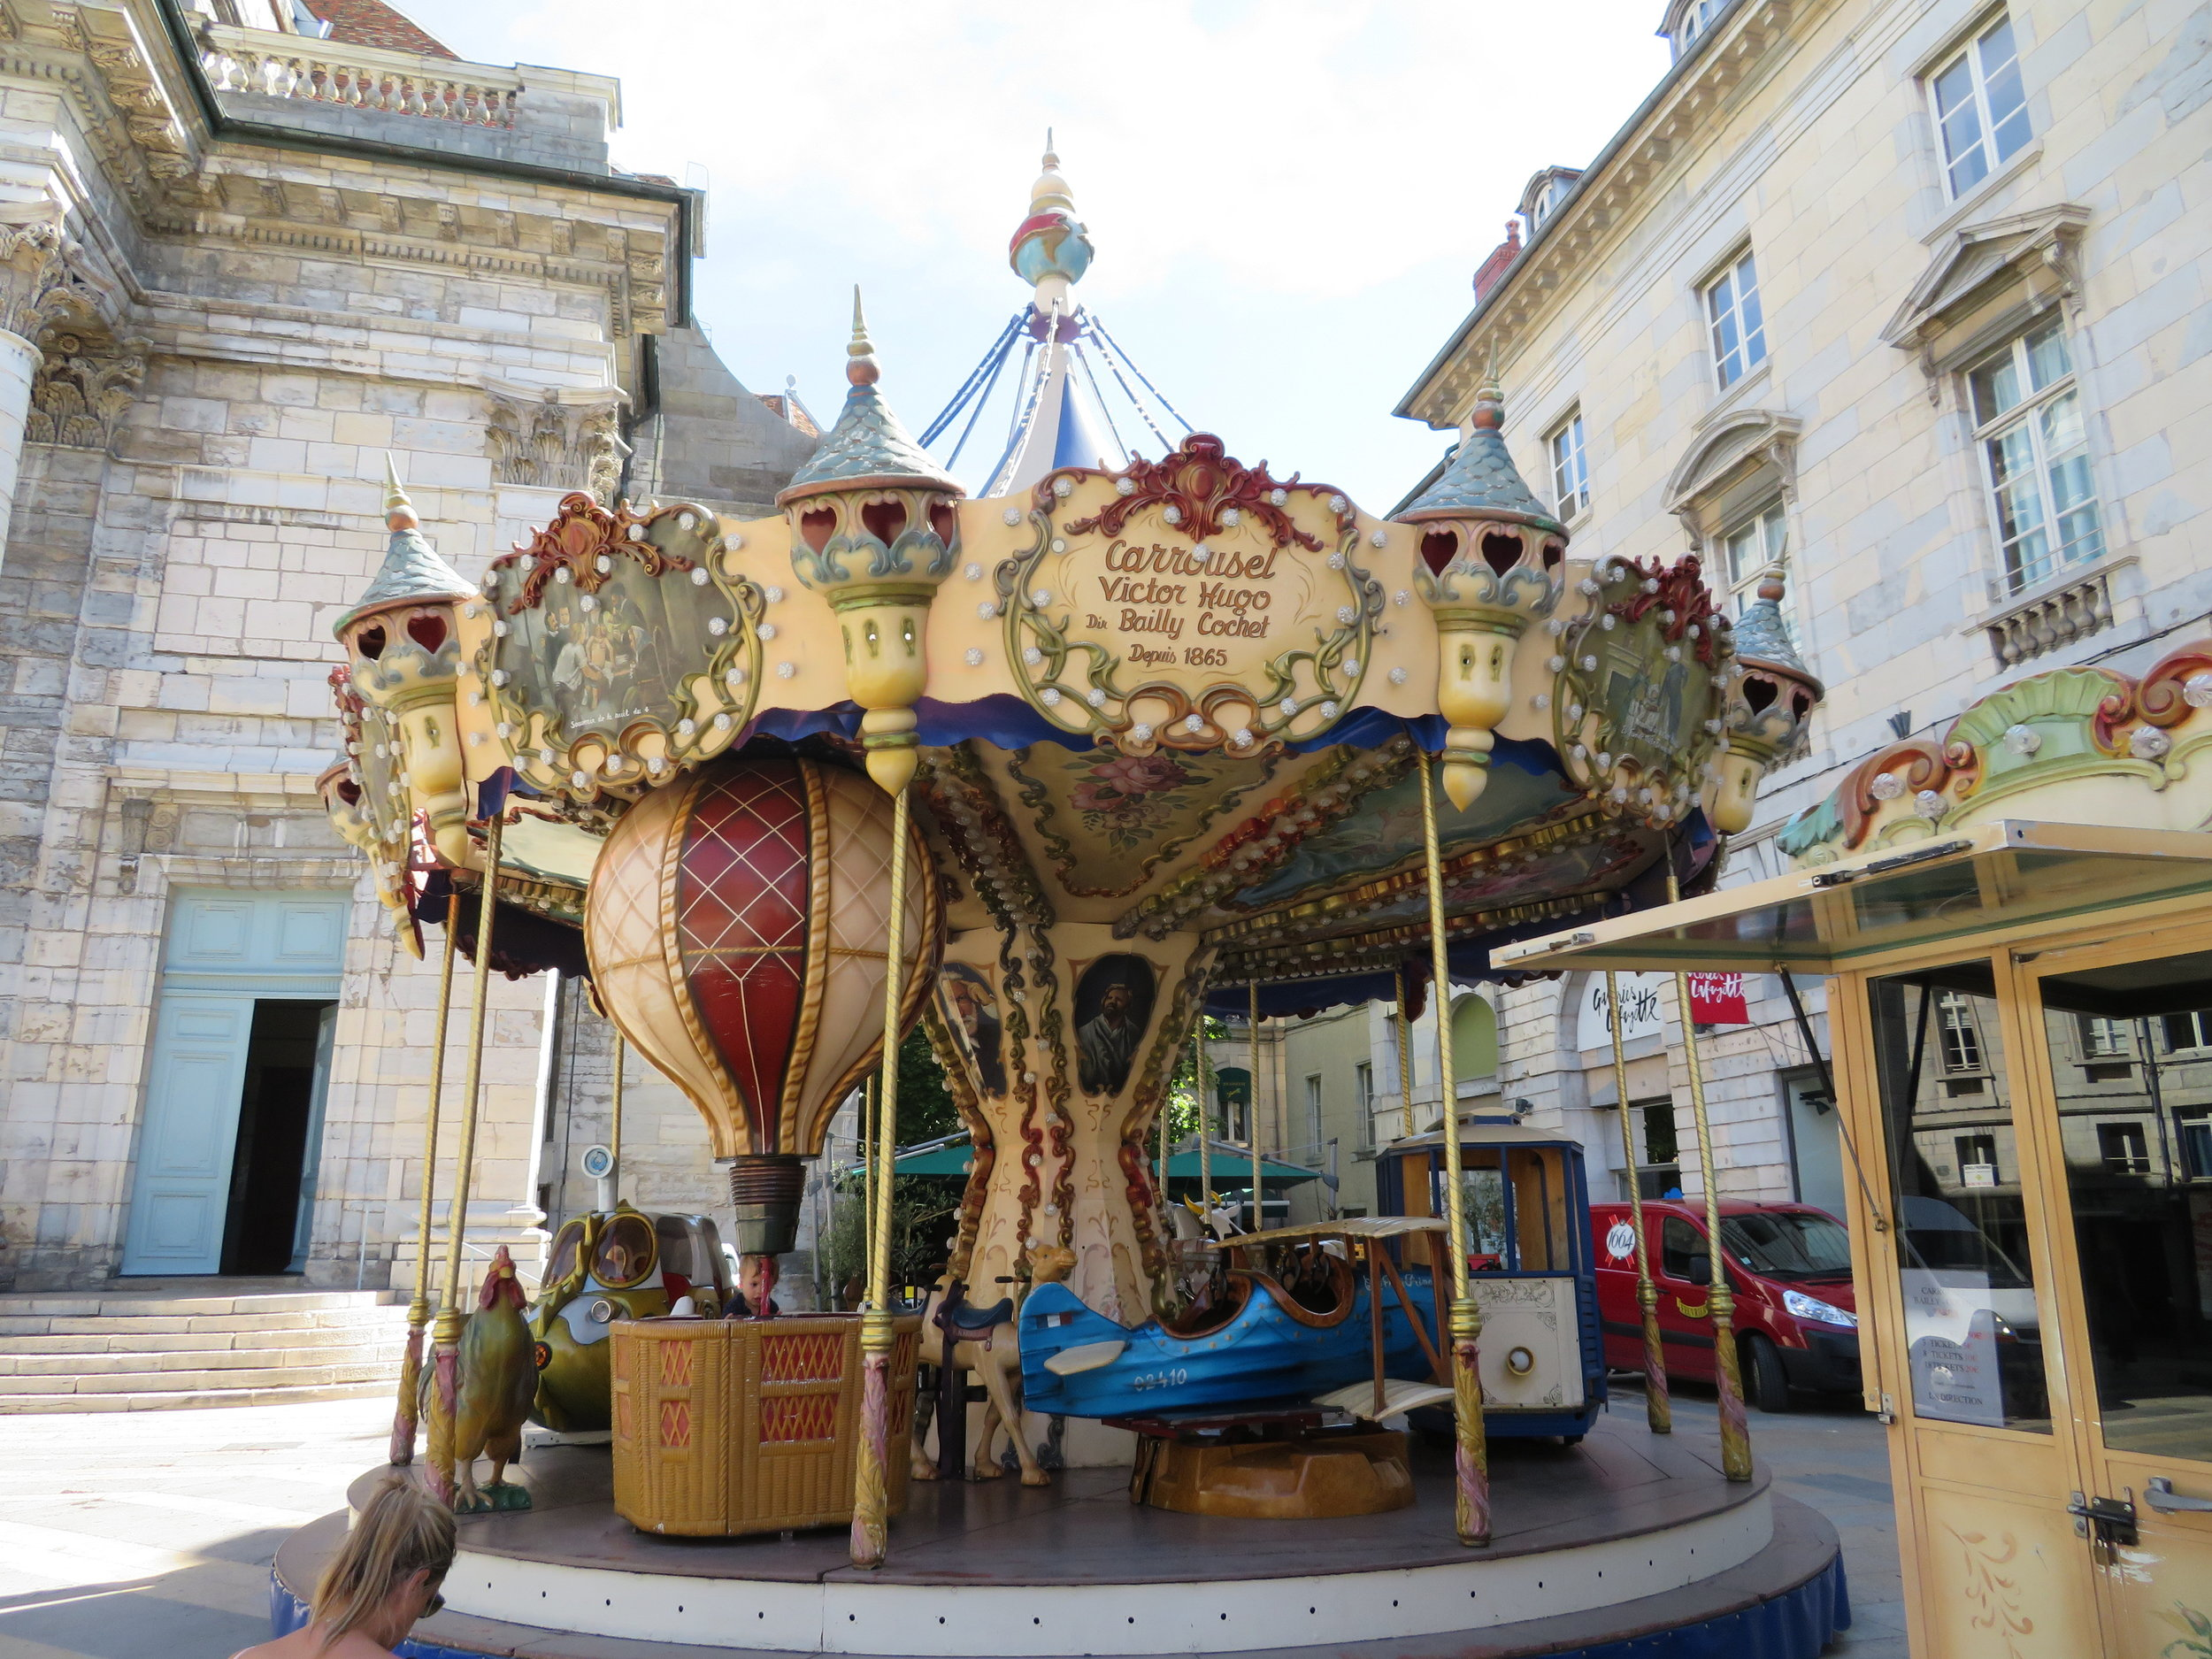 Vintage Bailley-Cochet carousel